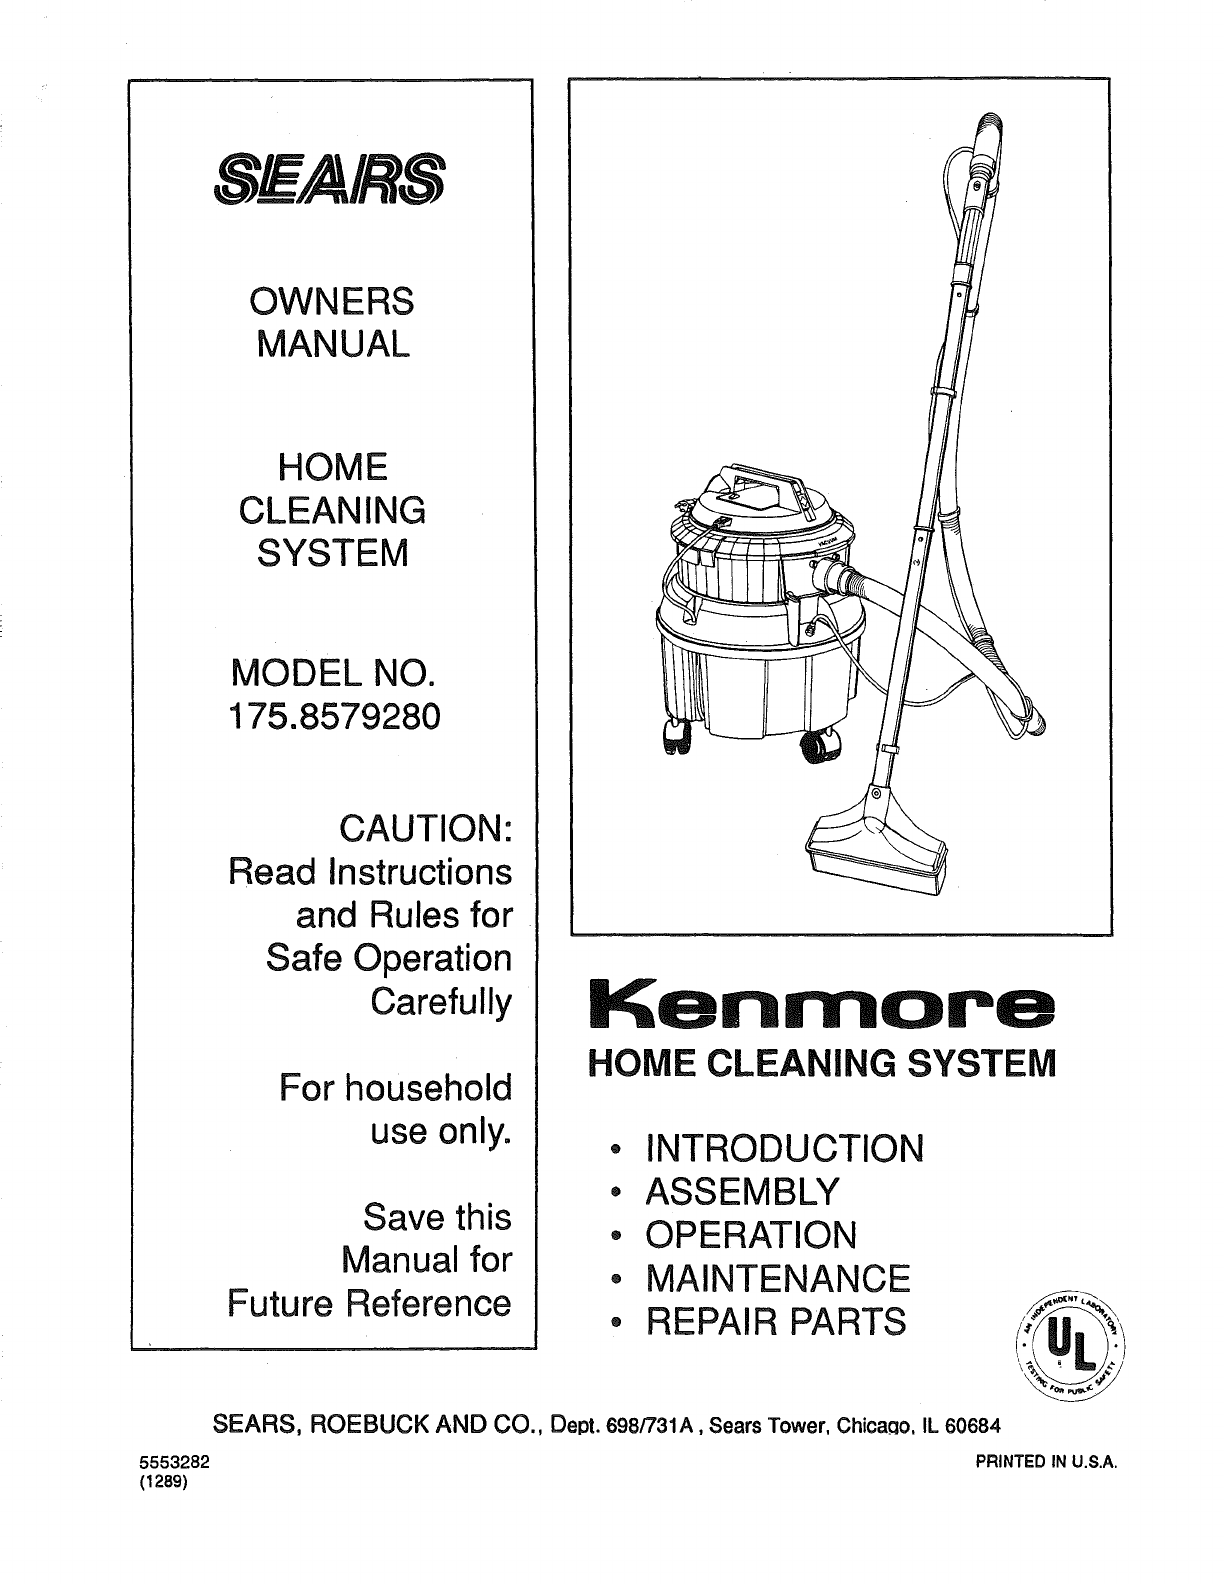 hight resolution of kenmore 1758579280 user manual home cleaning system manuals and guides l0812147